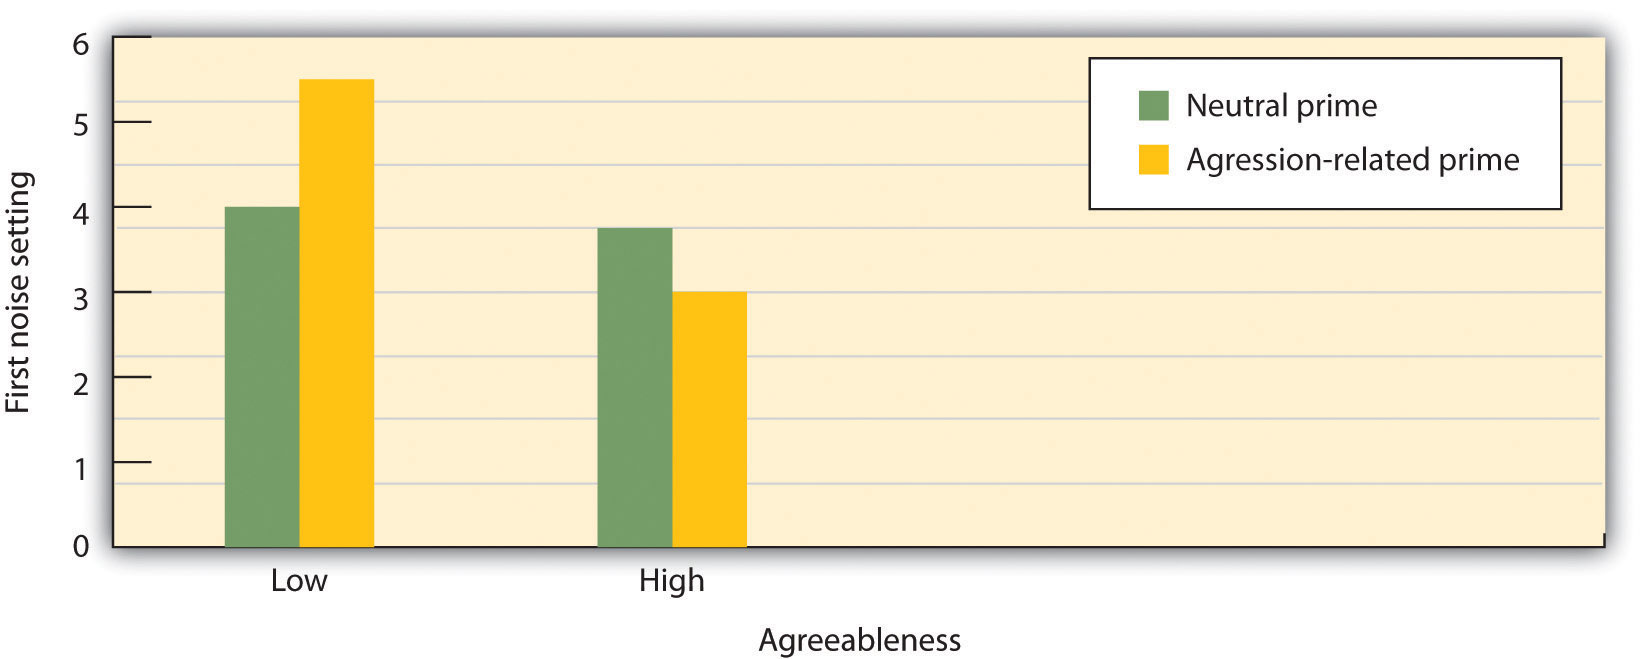 In this experiment by Meier, Robinson, and Wilkowski (2006) the independent variables are type of priming (aggression or neutral) and participant agreeableness (high or low). The dependent variable is the white noise level selected (a measure of aggression). The participants who were low in agreeableness became significantly more aggressive after seeing aggressive words, but those high in agreeableness did not.